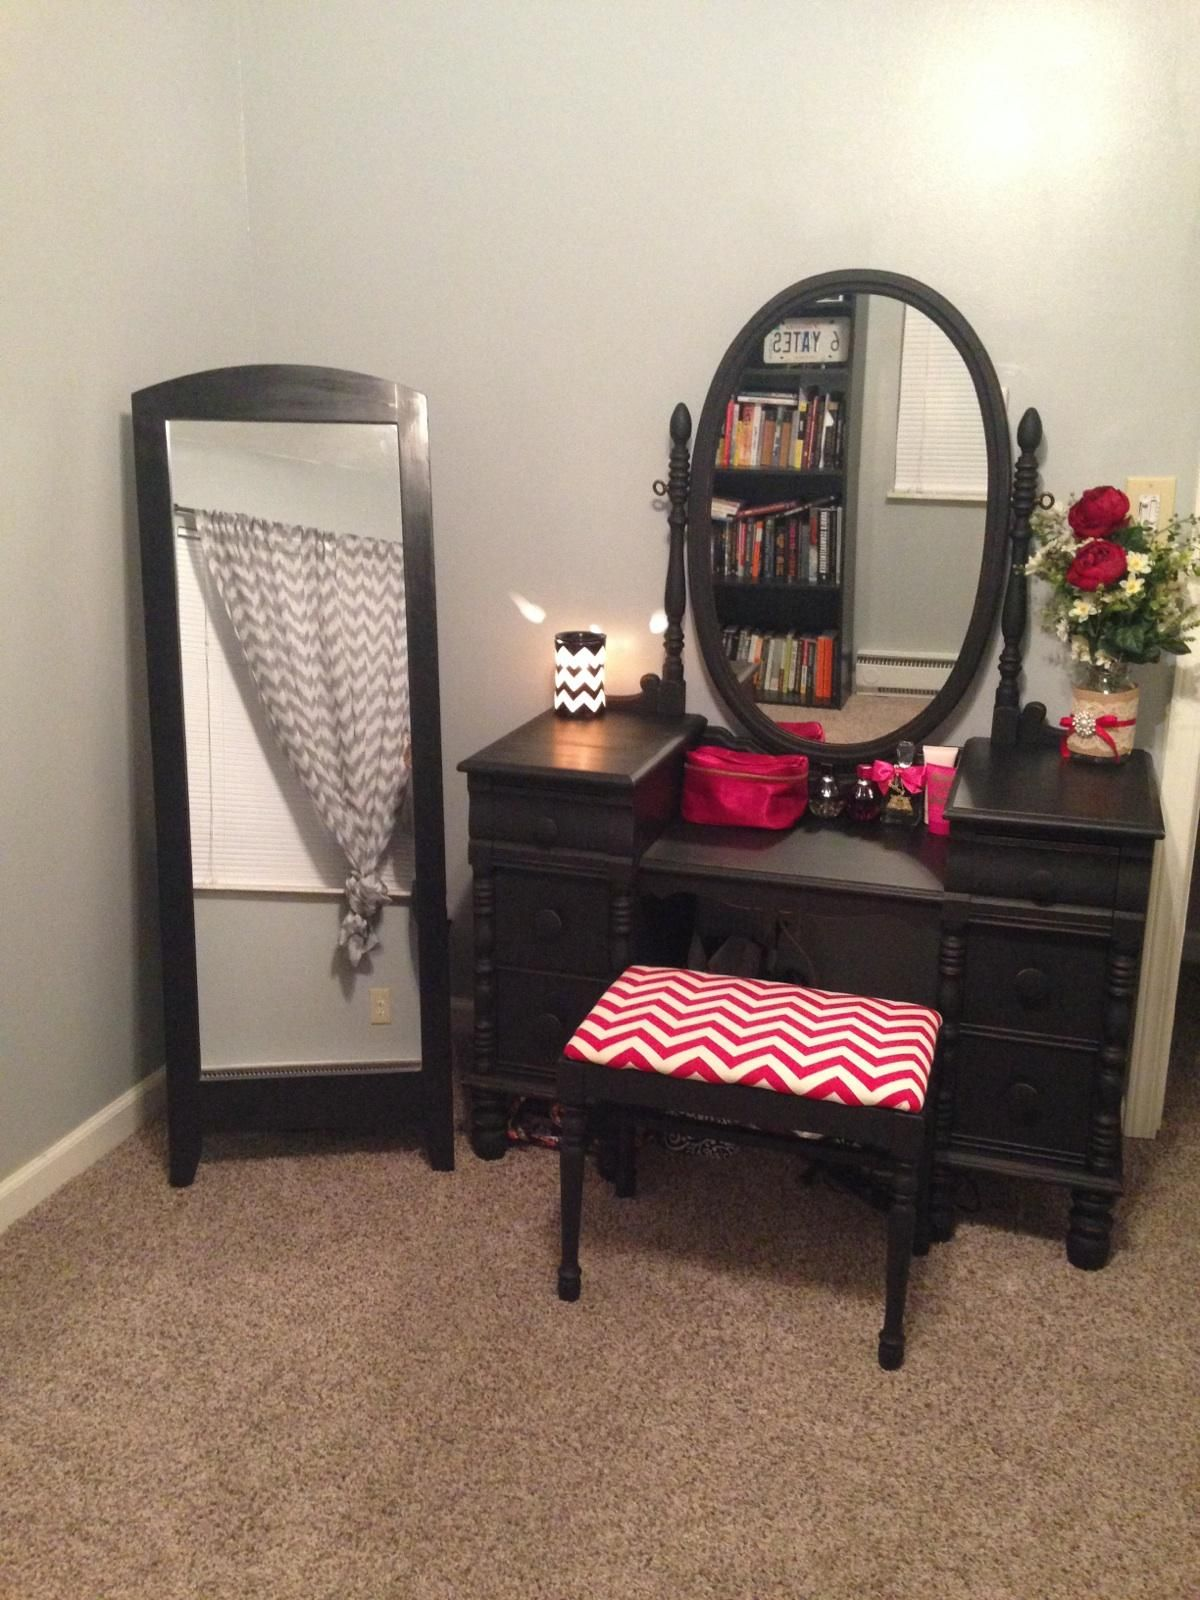 innovative girls bedroom furniture ideas | Custom refinished vanity and bench by Sweetashleyscottage ...